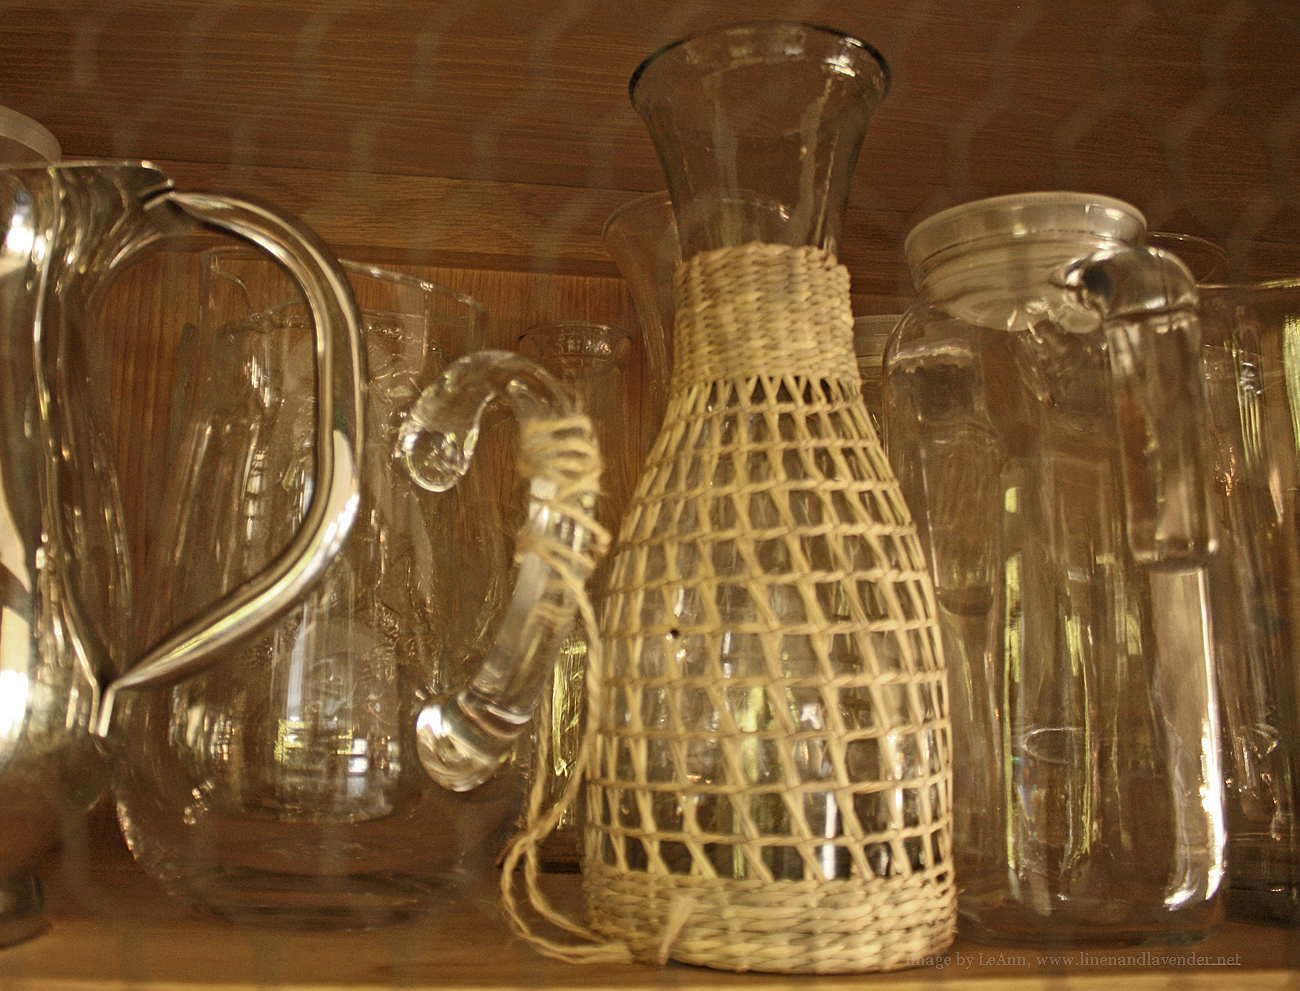 l&l at home-glass carafes, pitchers-image by L for Thinking Outside the Box - www.linenlavenderlife.com